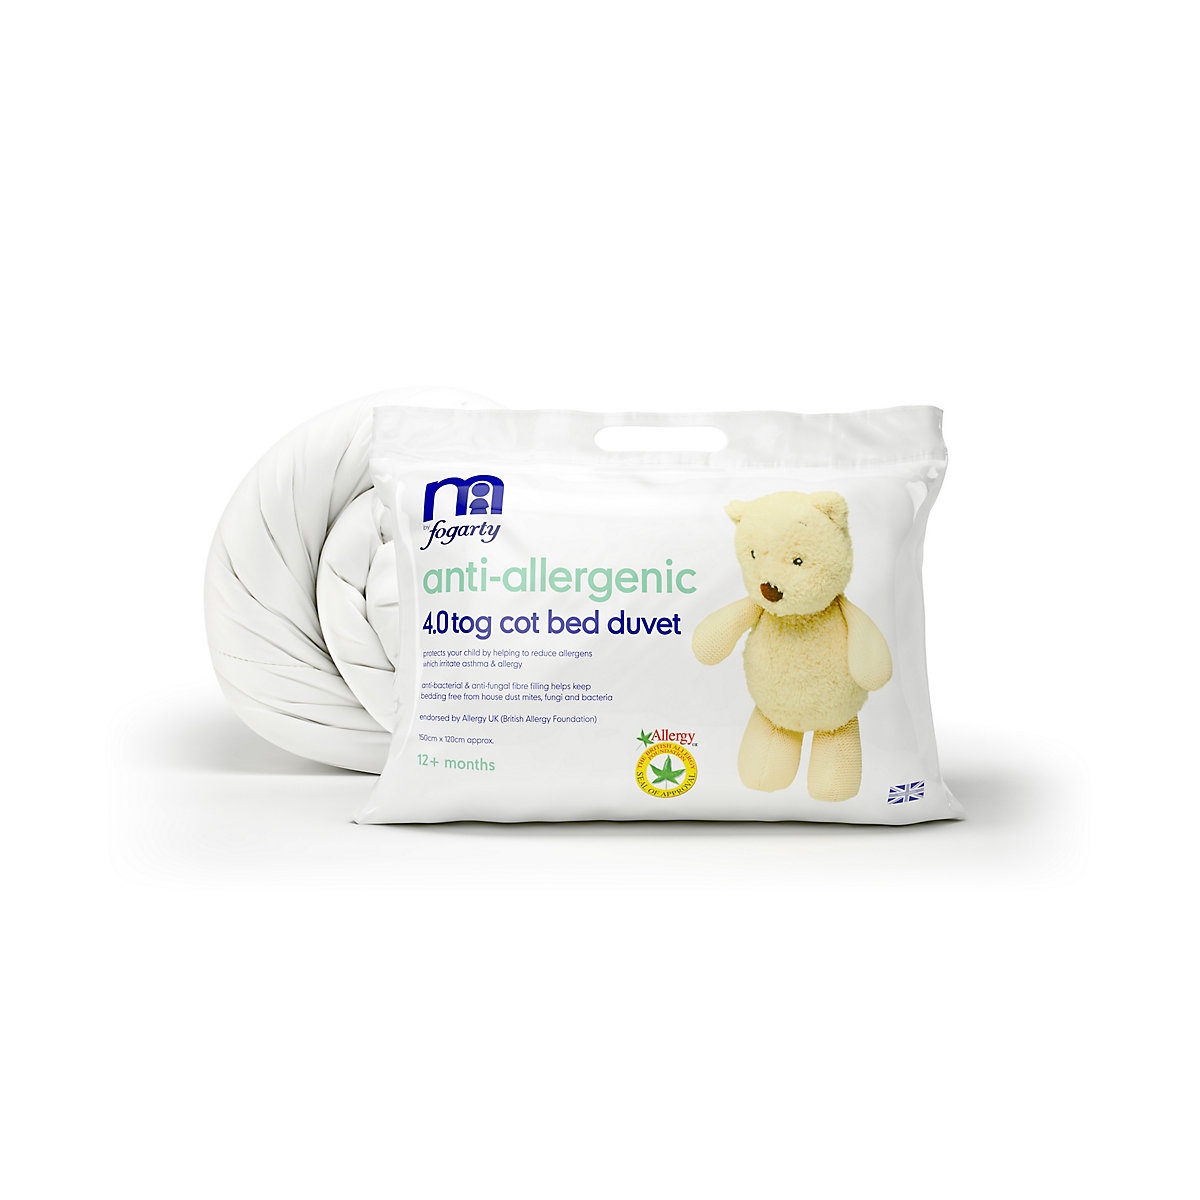 B Baby Bedding By Fogarty Anti-Allergenic Cot Bed Duvet